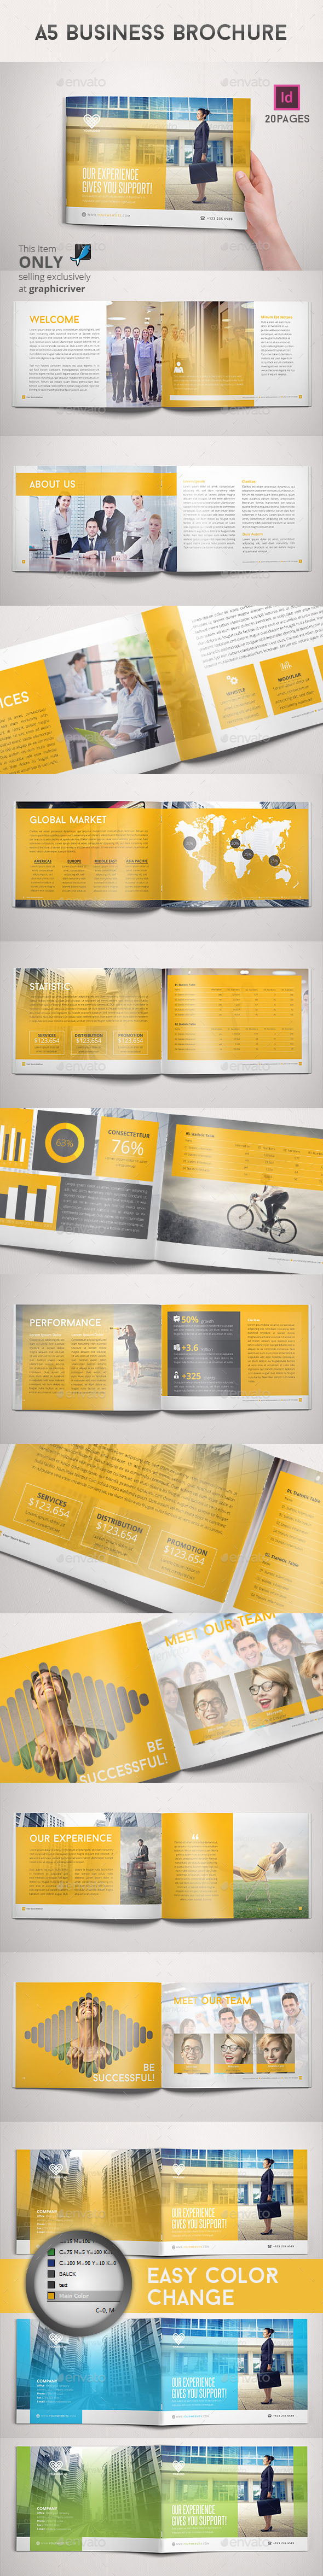 GraphicRiver A5 Business Brochure 9209149